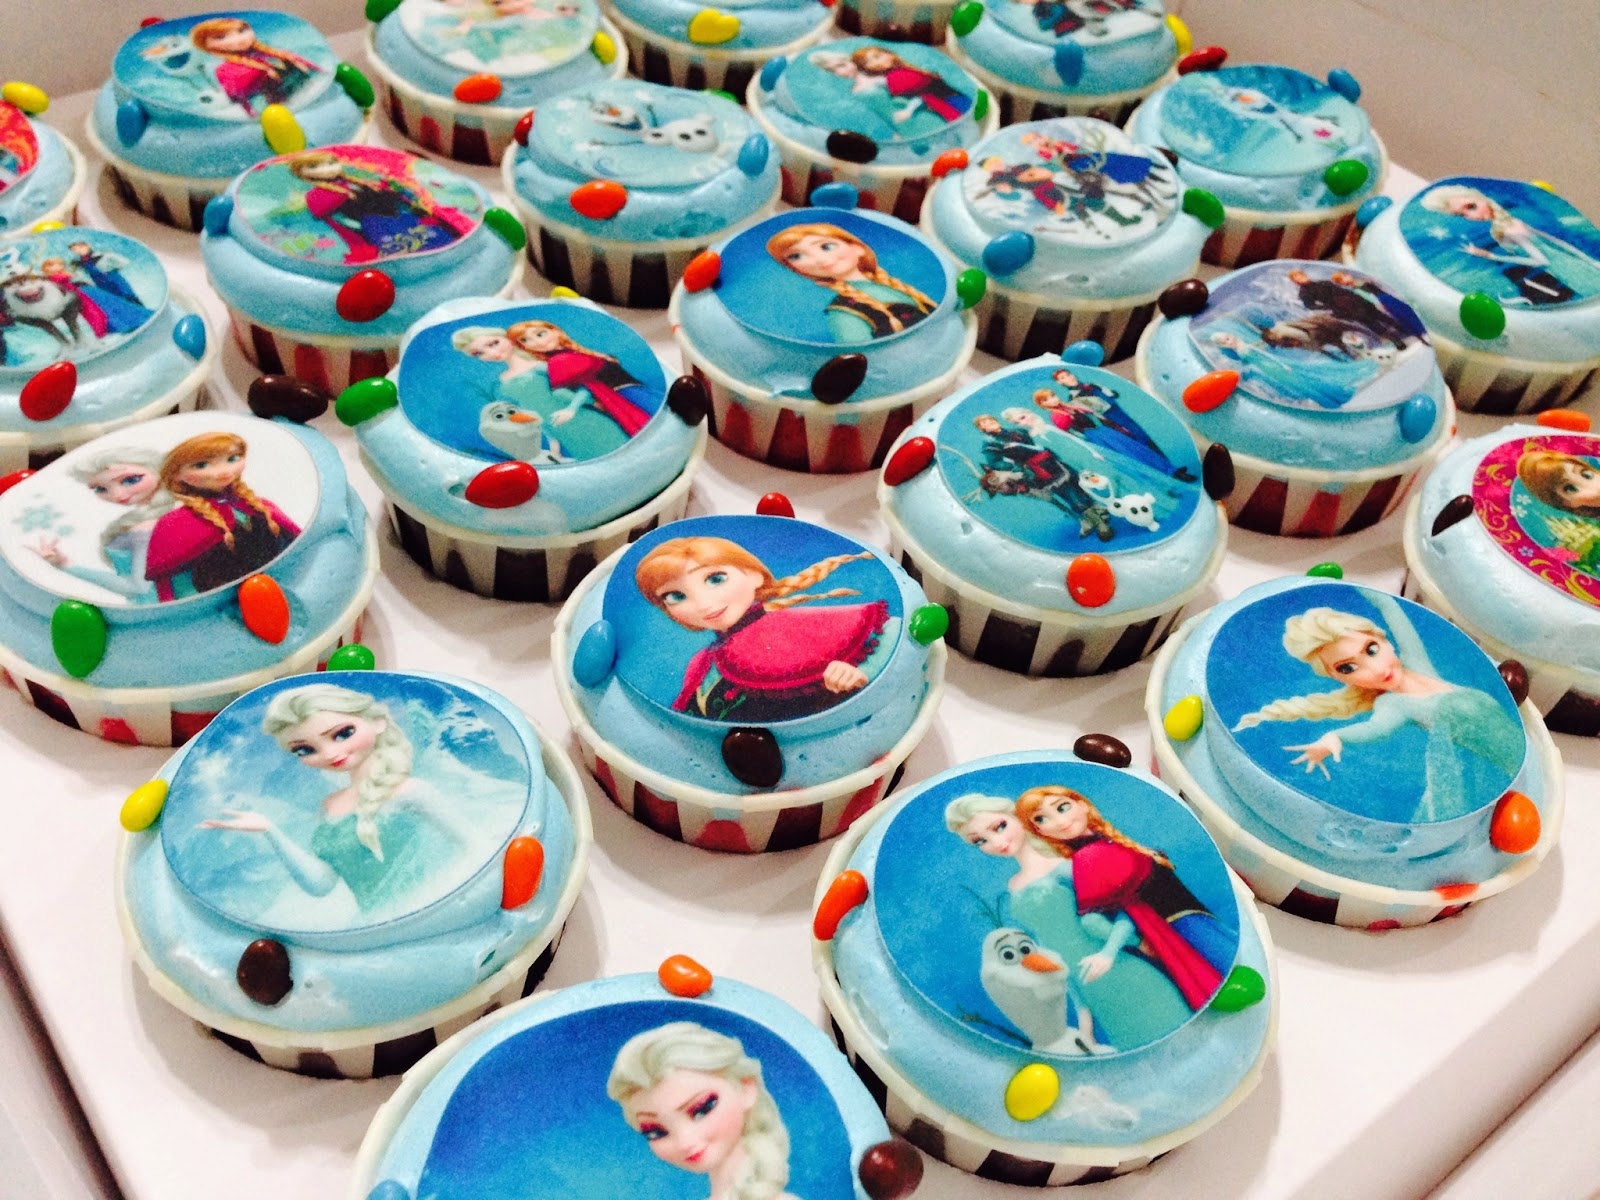 frozen themed cakes and cupcakes